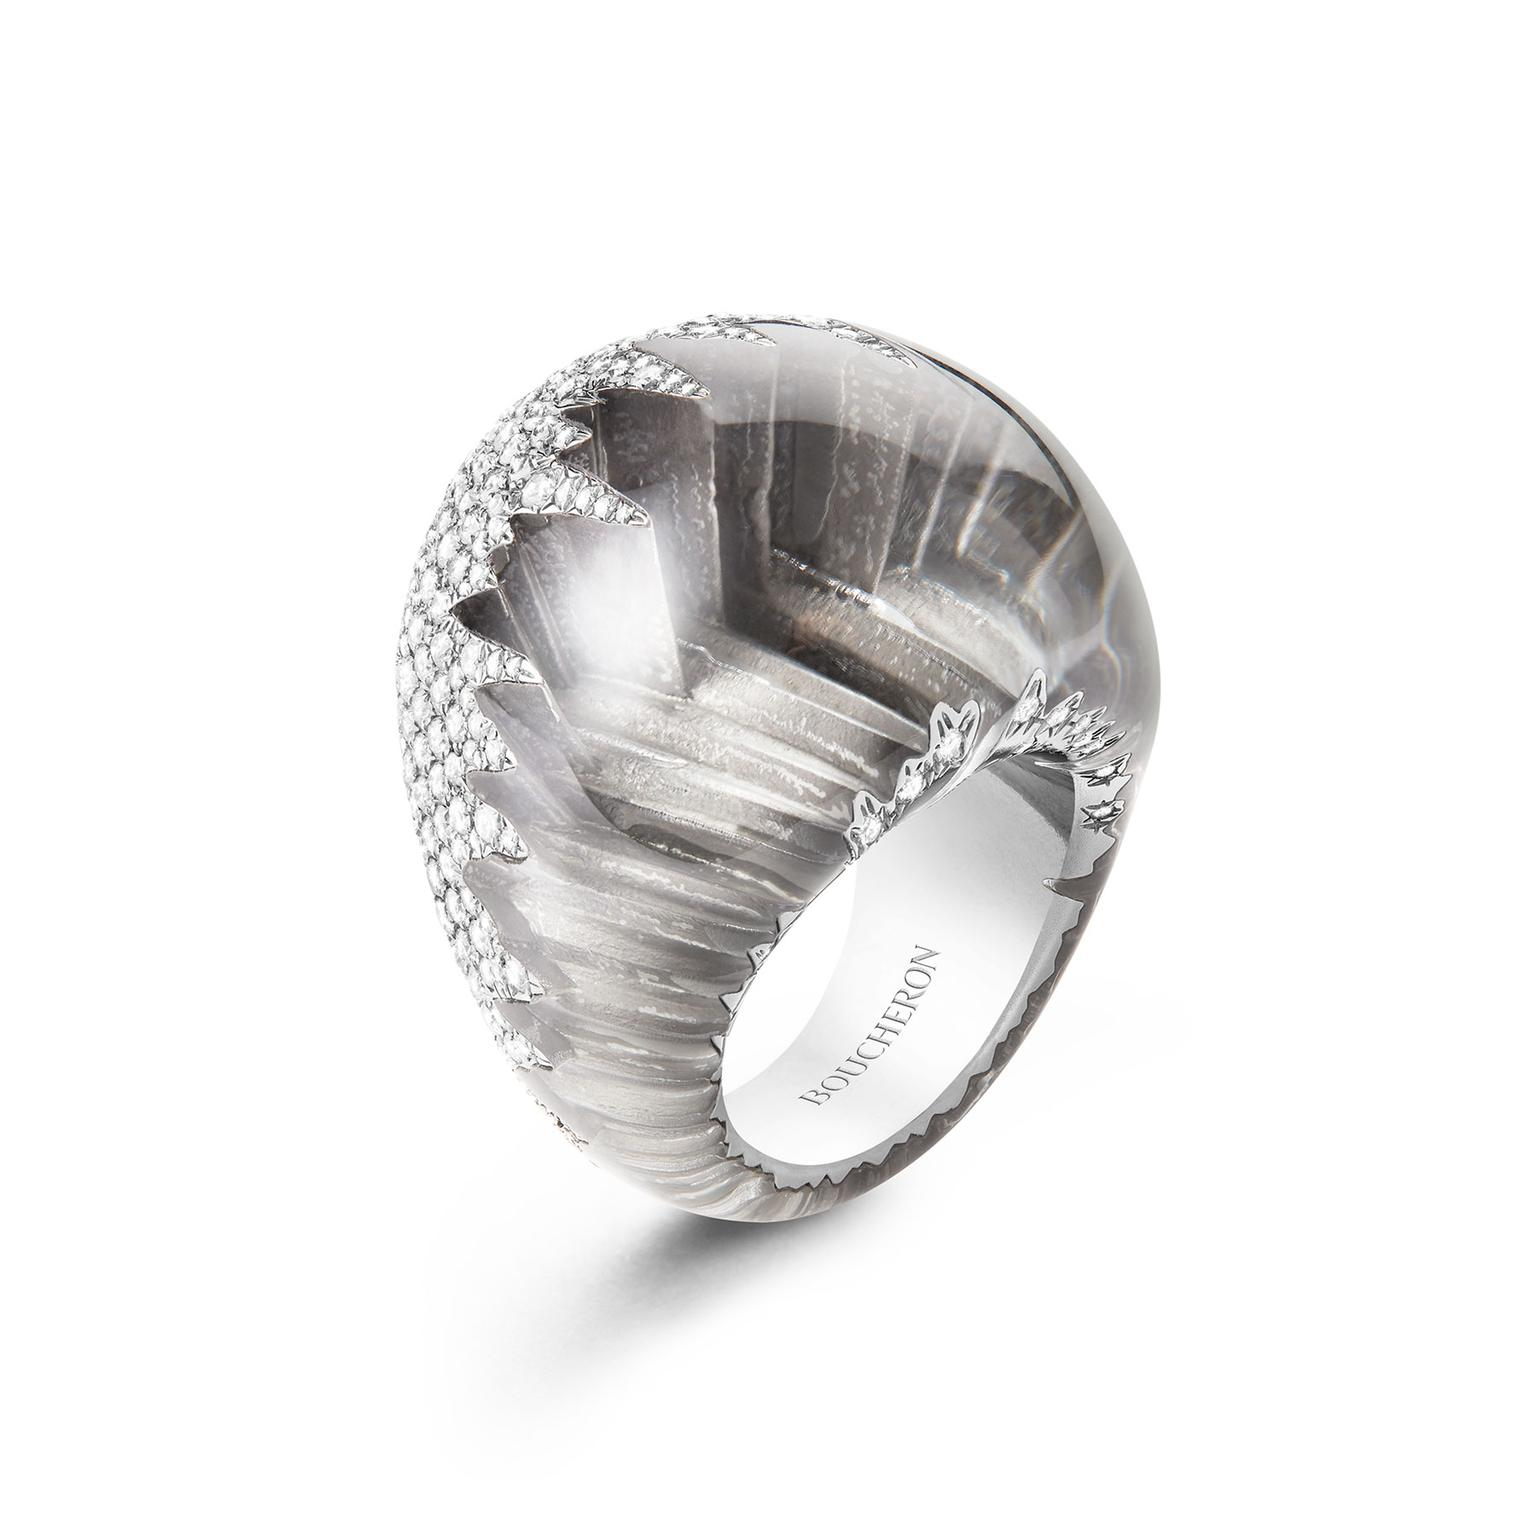 Boucheron Hiver Imperial frosted quartz and diamond ring